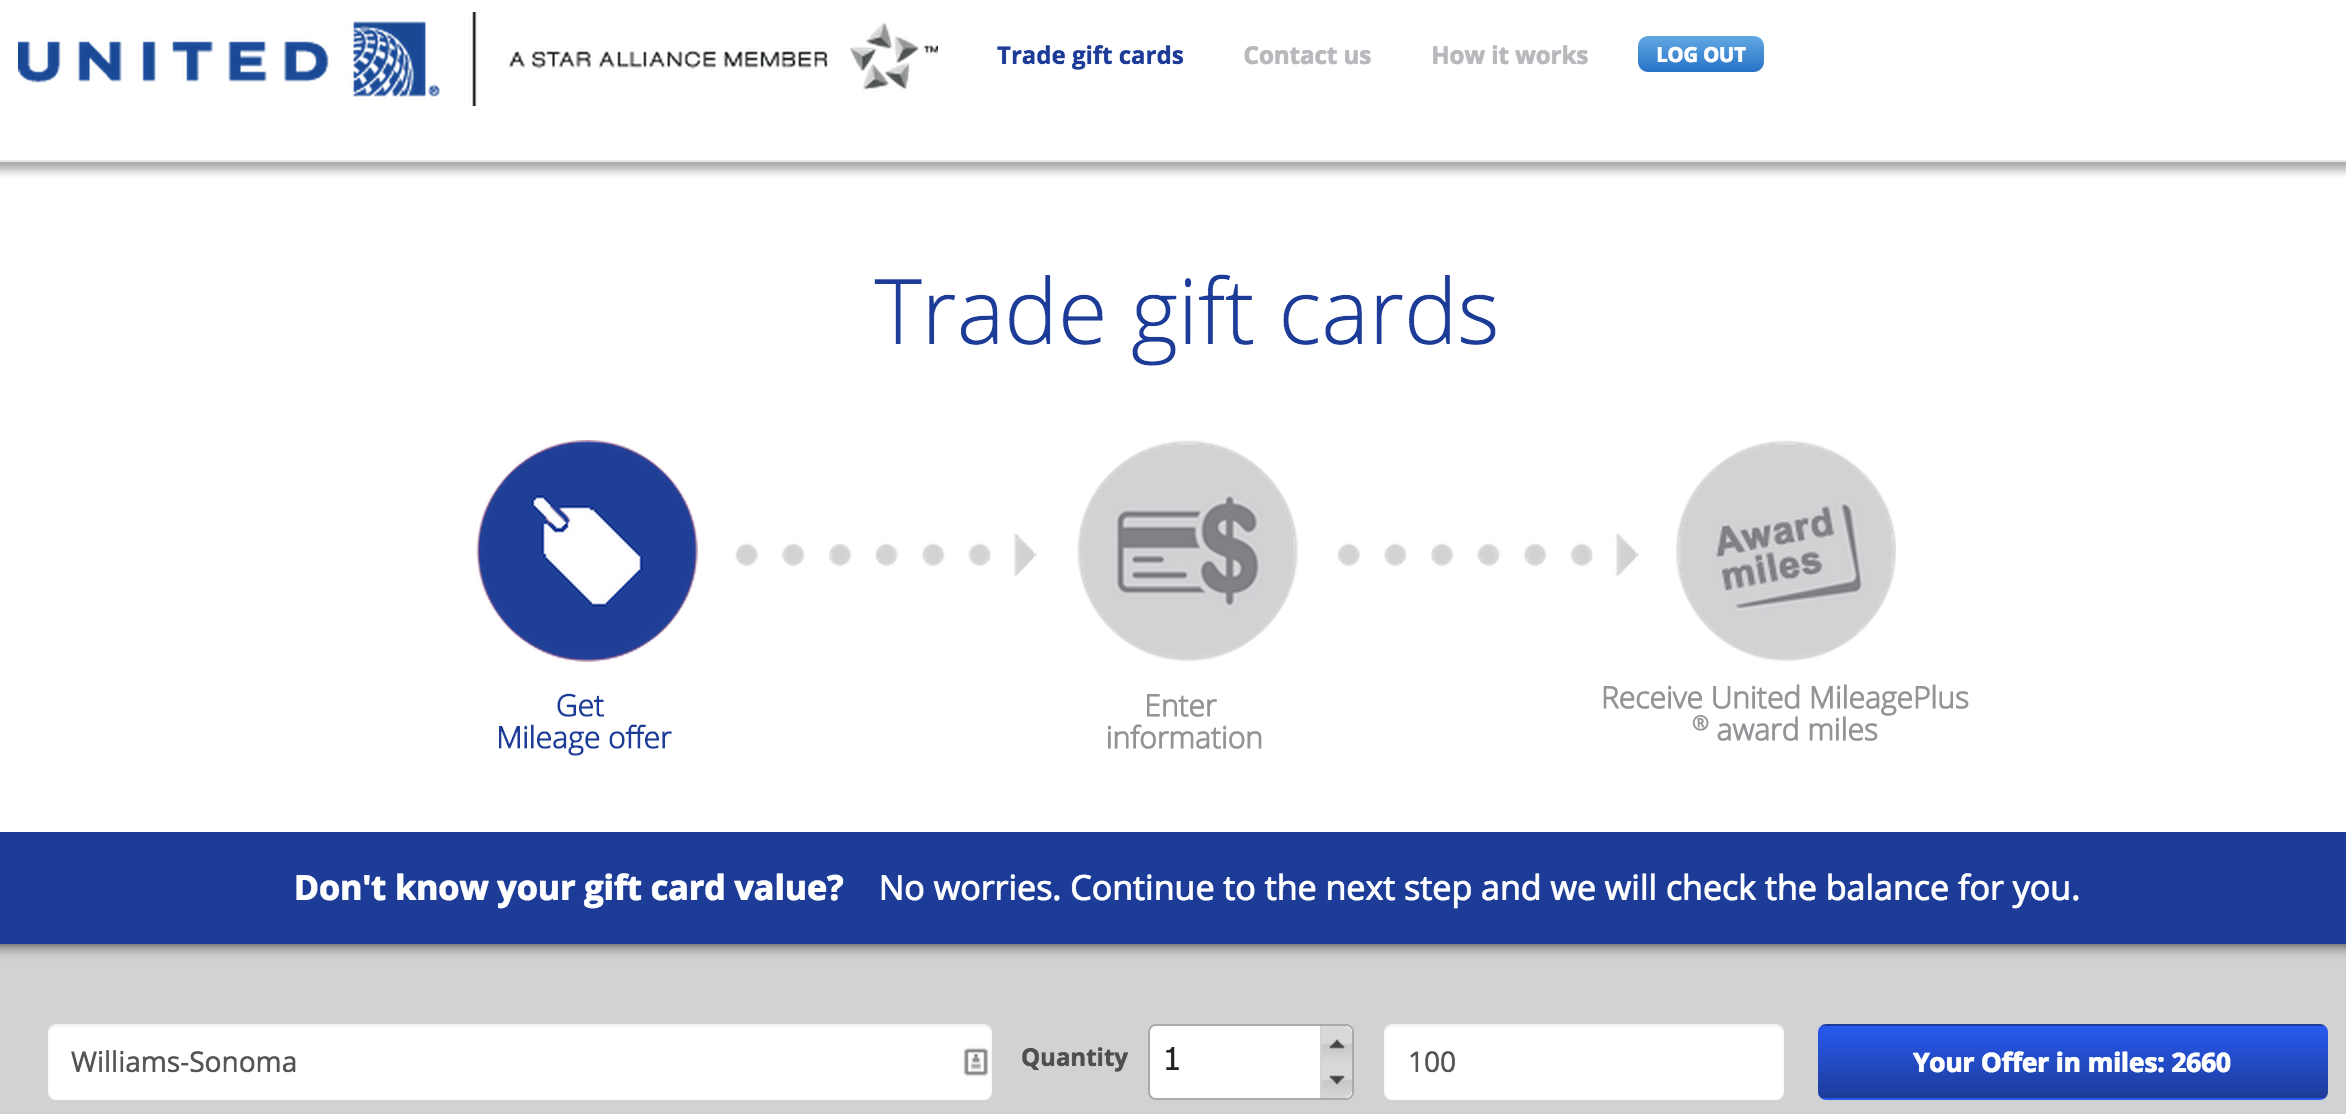 Is Trading Gift Cards For United Miles A Good Deal?